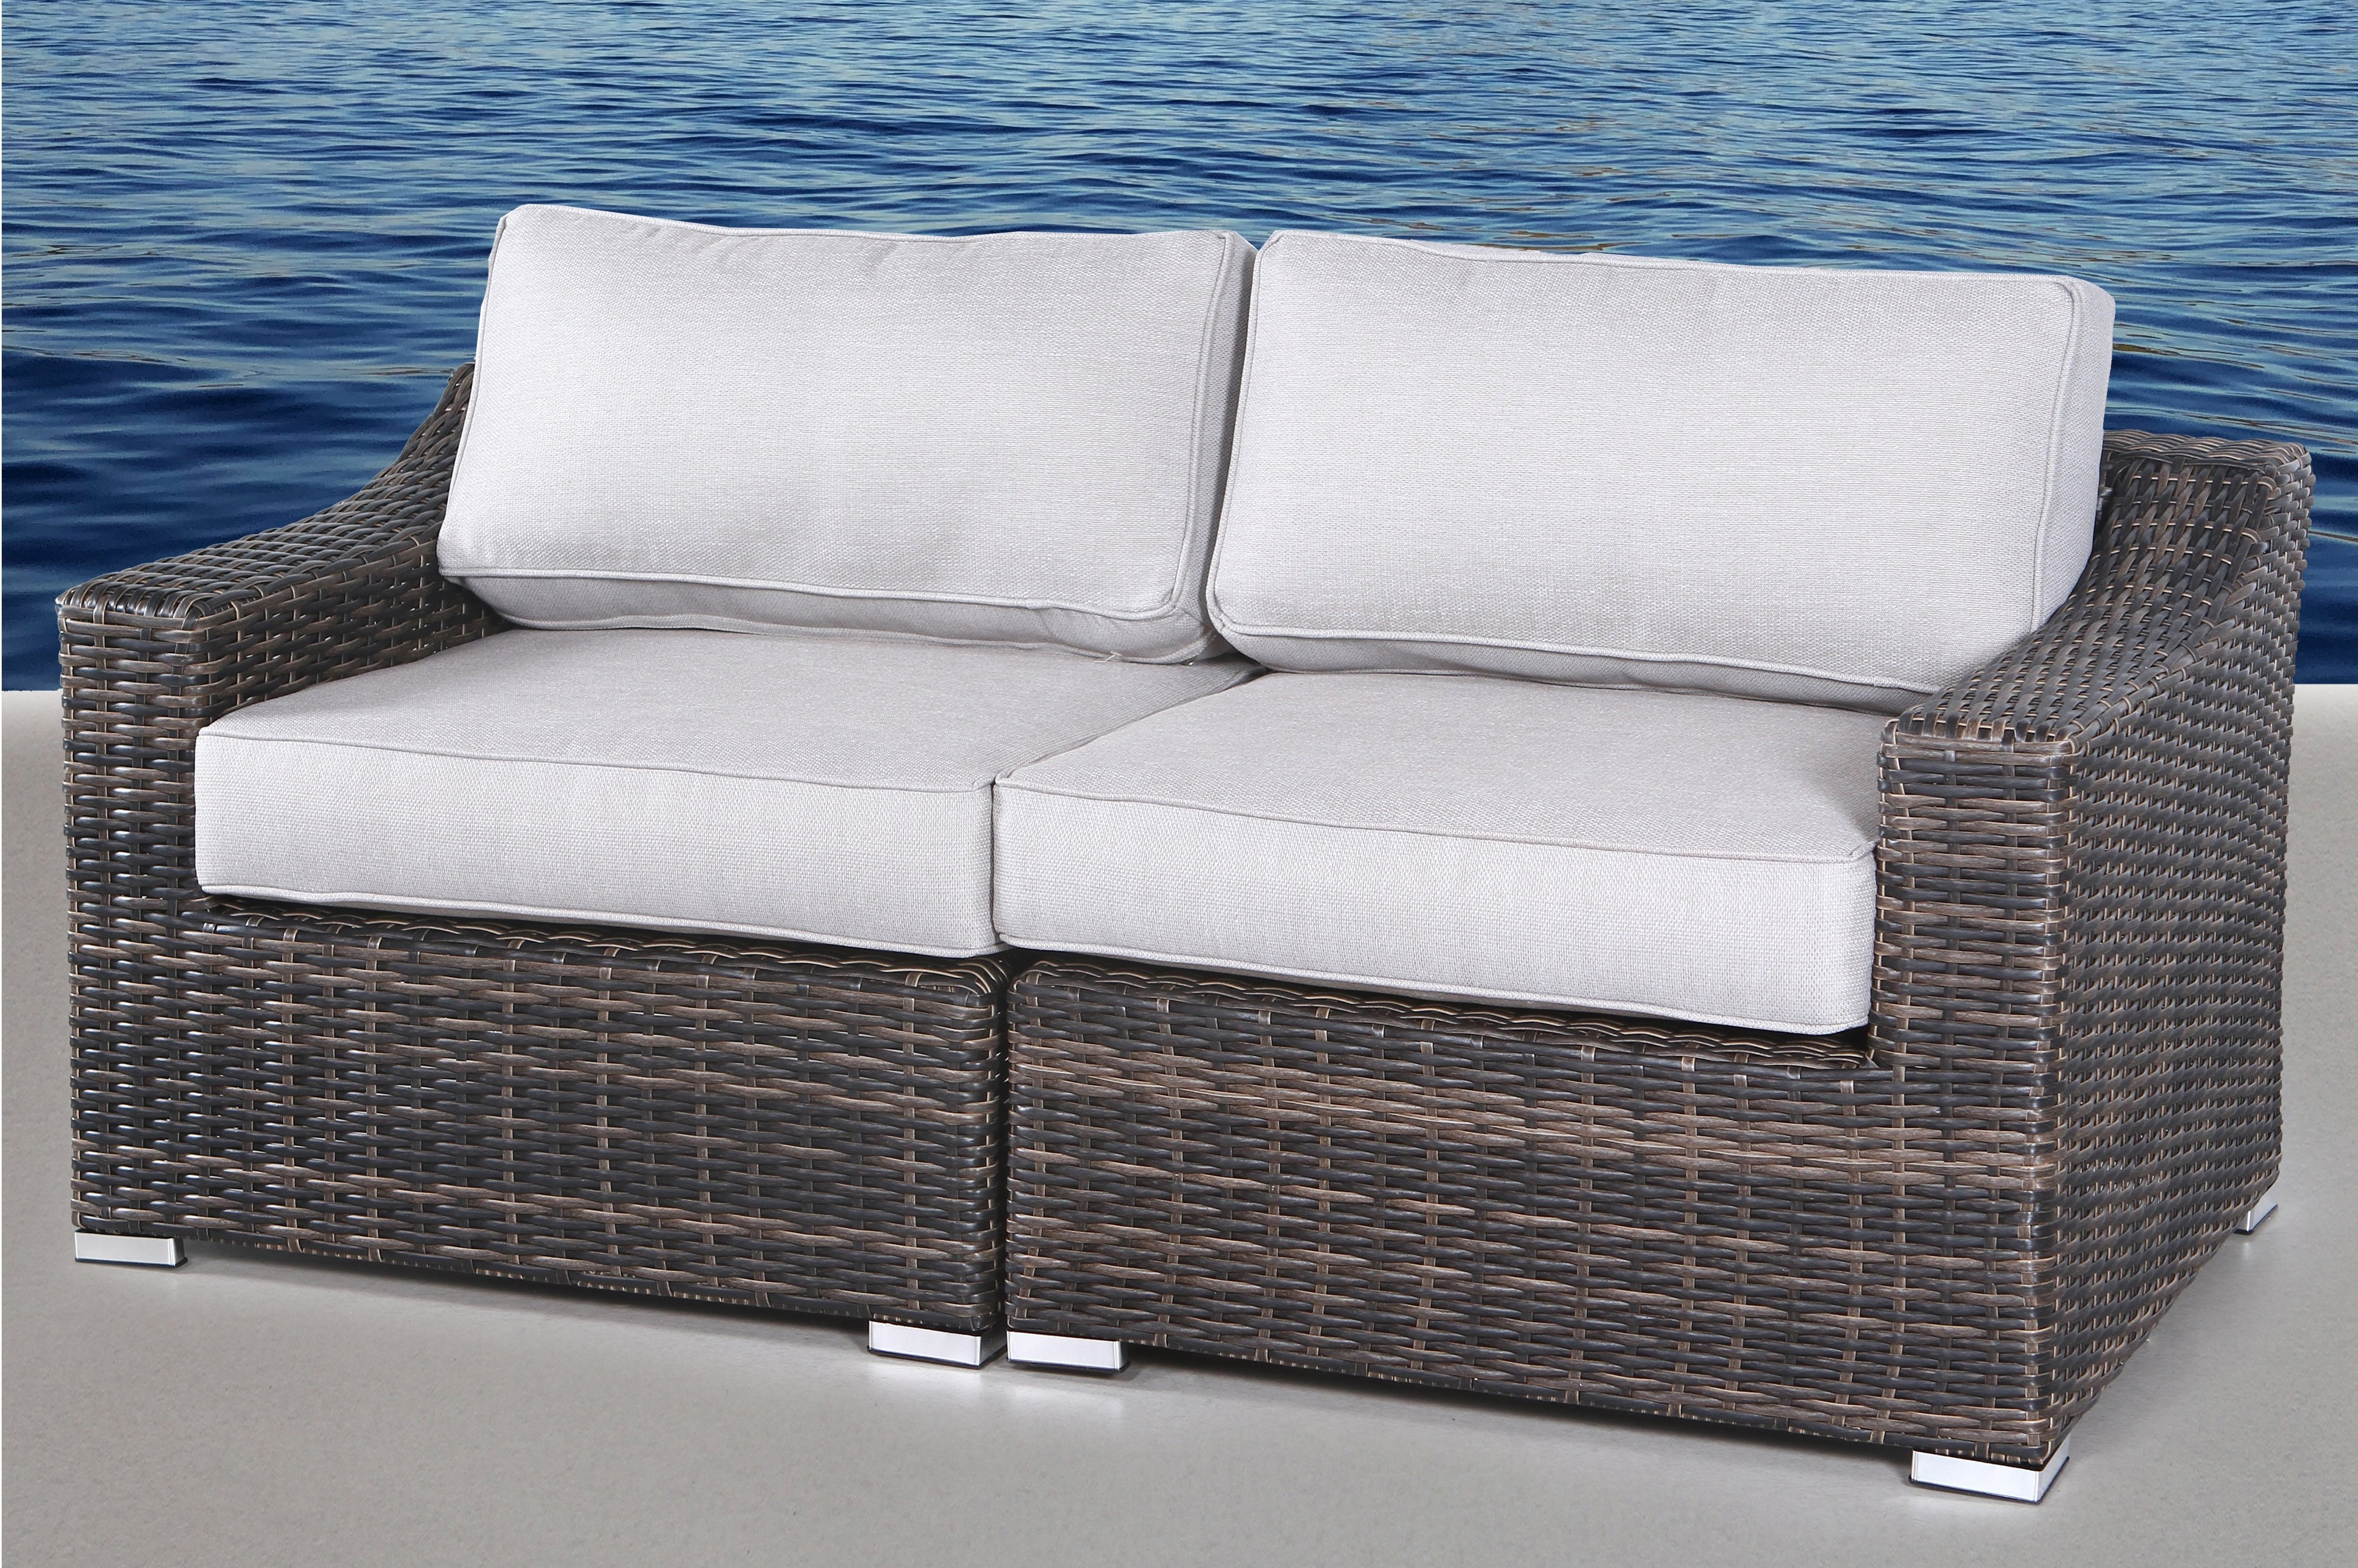 Huddleson Loveseat With Cushion With Regard To Widely Used Loggins Loveseats With Cushions (Gallery 5 of 20)